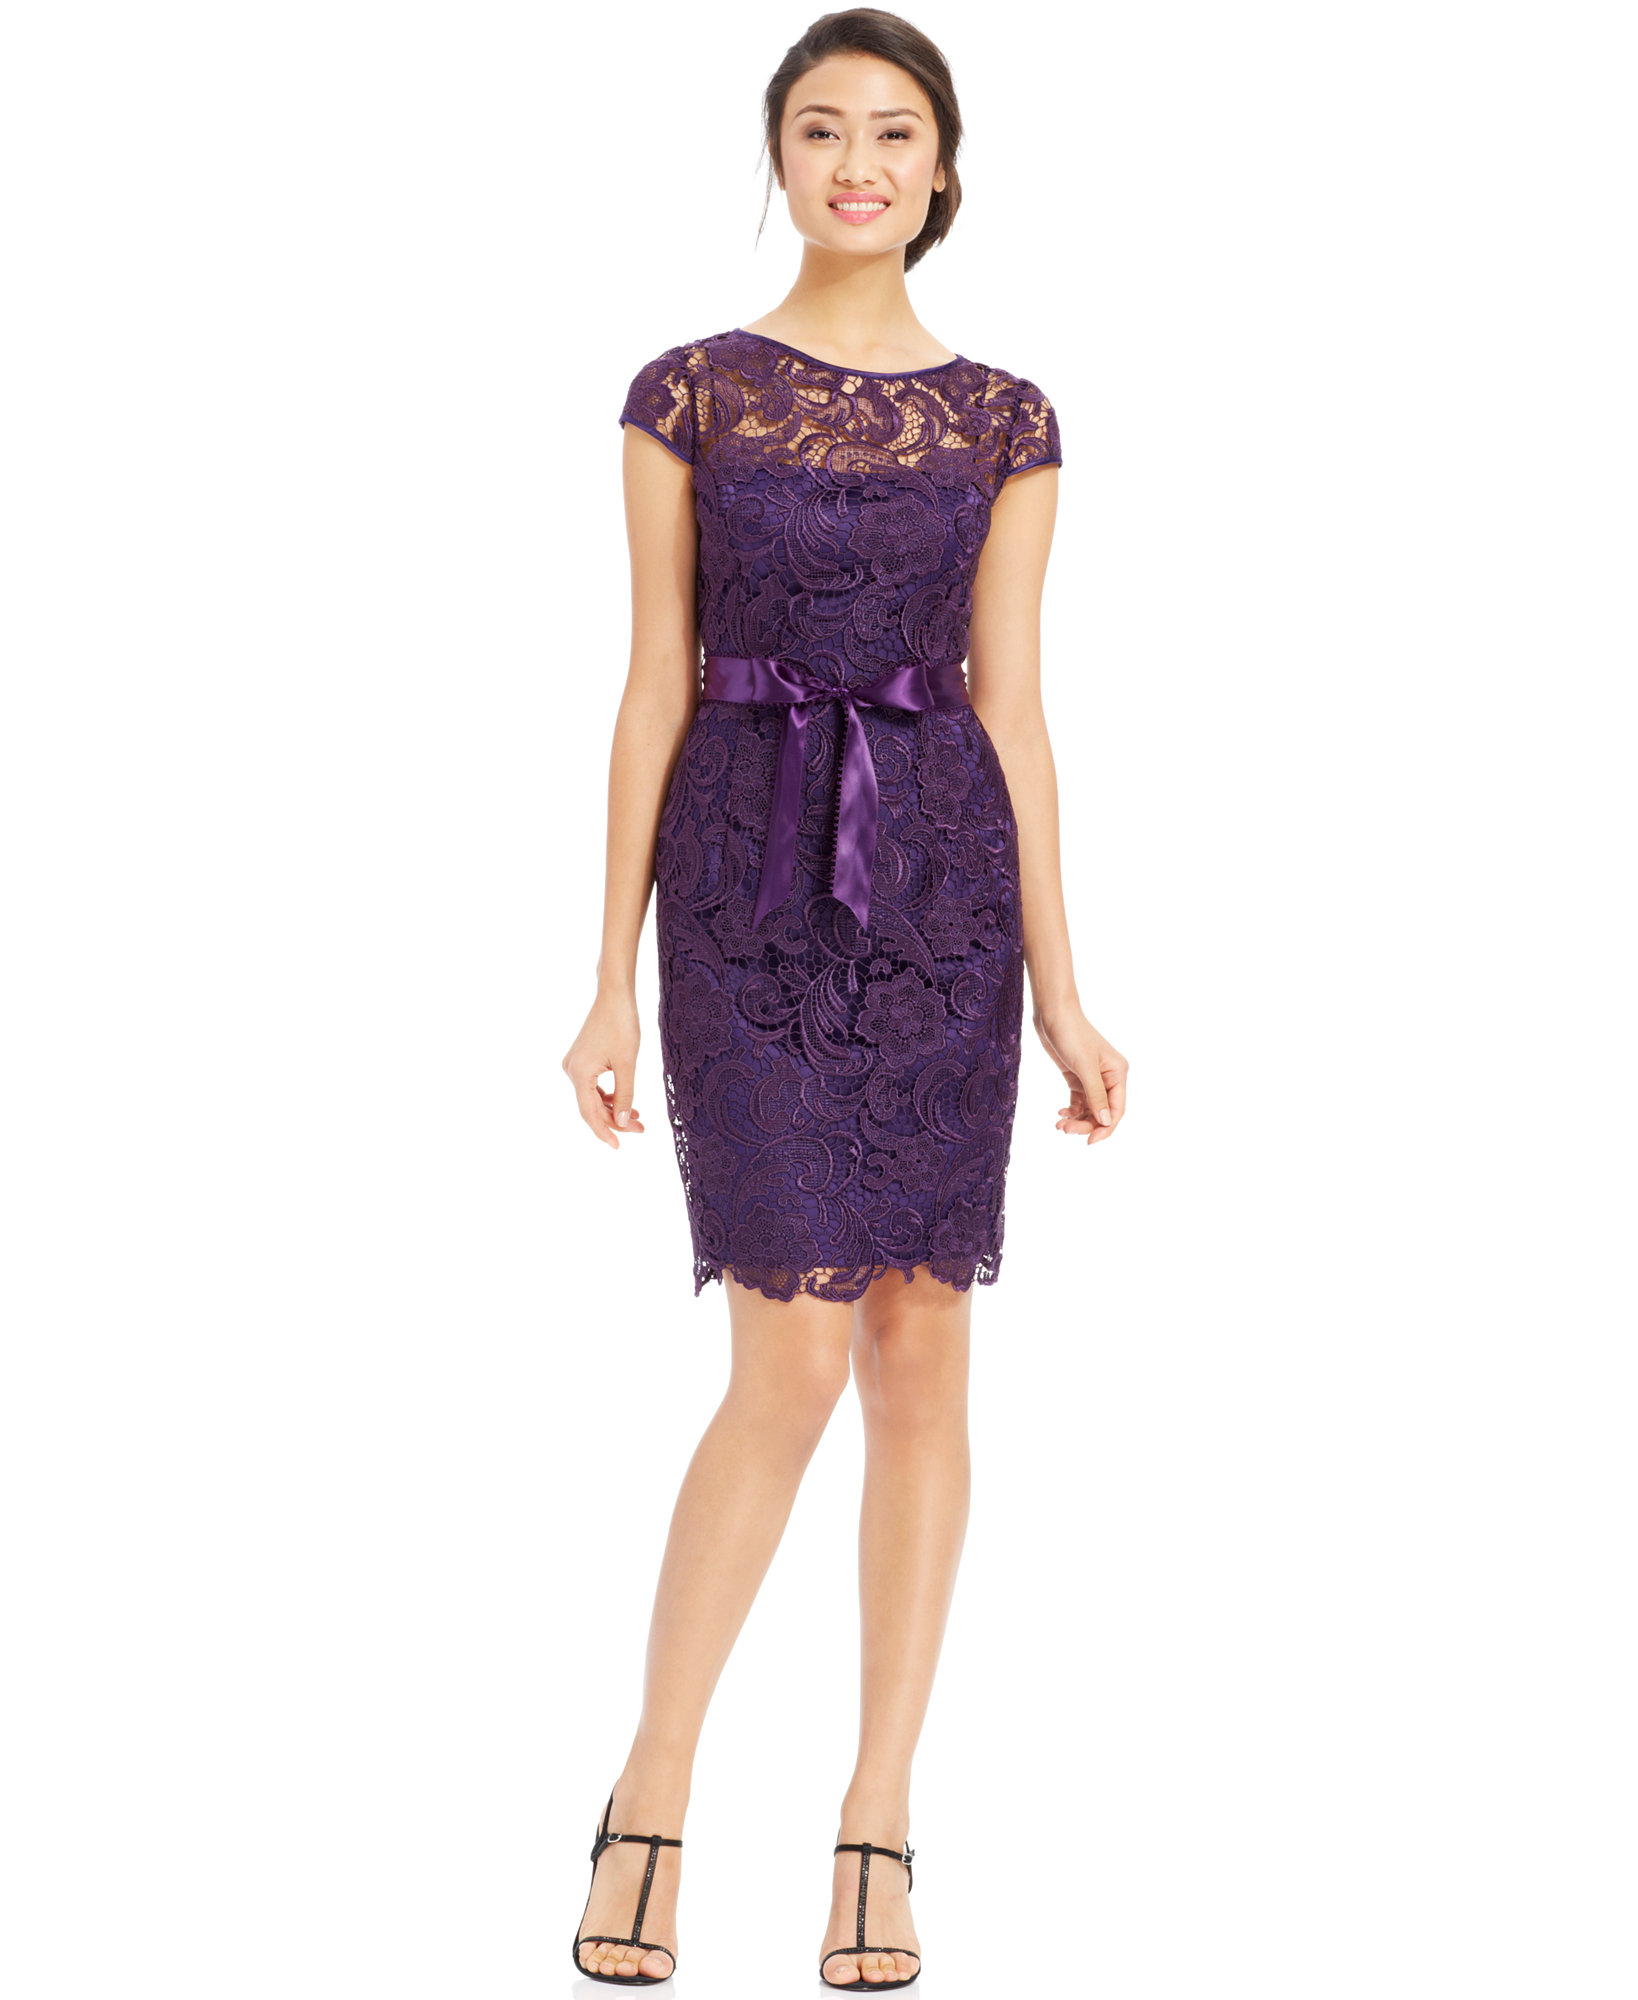 9a86eae9 ADRIANNA PAPELL AMETHYST Cap-Sleeve Illusion Lace Sheath Dress 6 ...